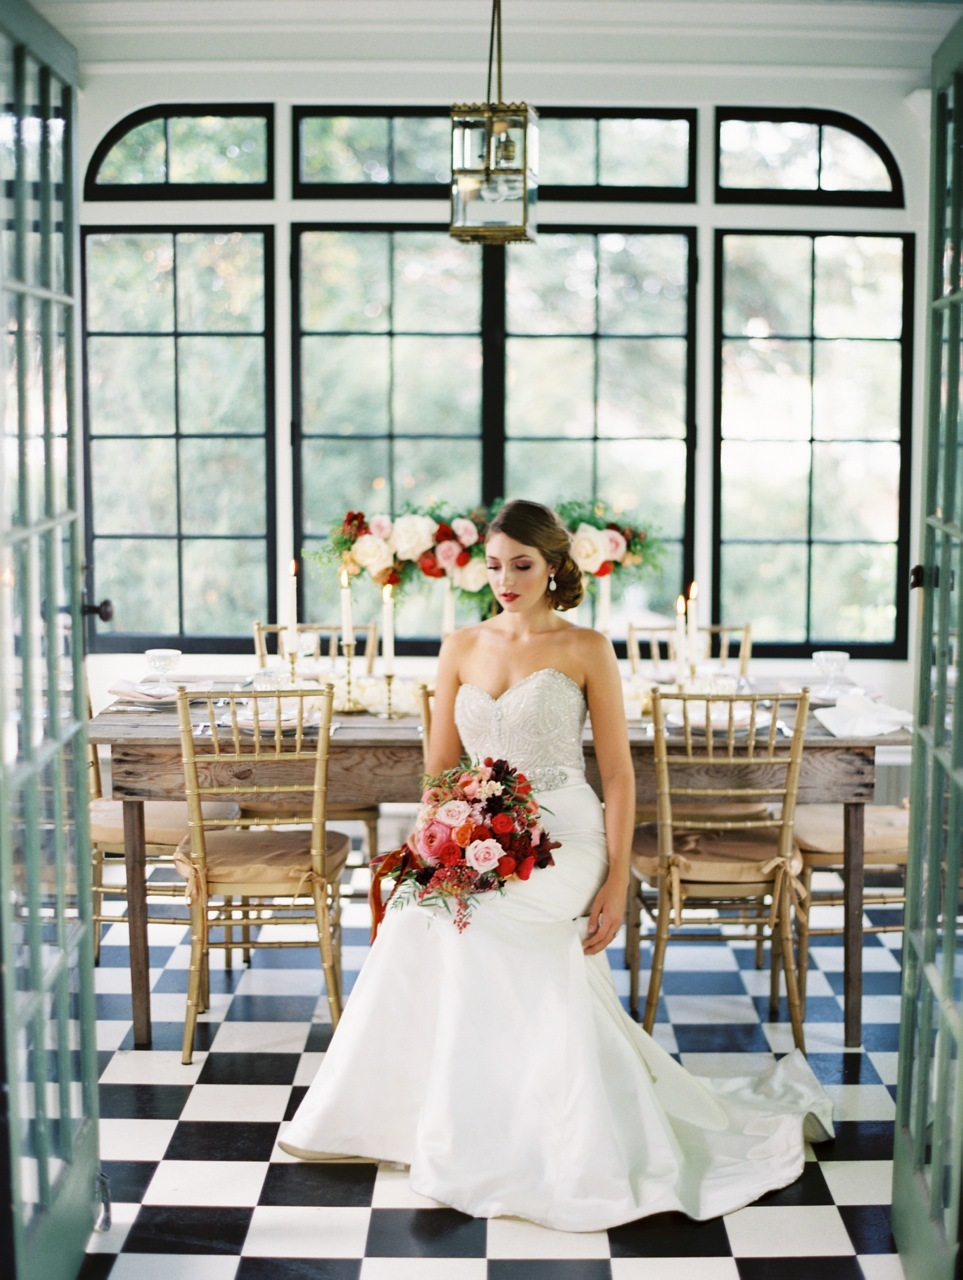 Bride, Lazaro, Crimson, Checkered, Love poems styled wedding, 3214, Greenhouse